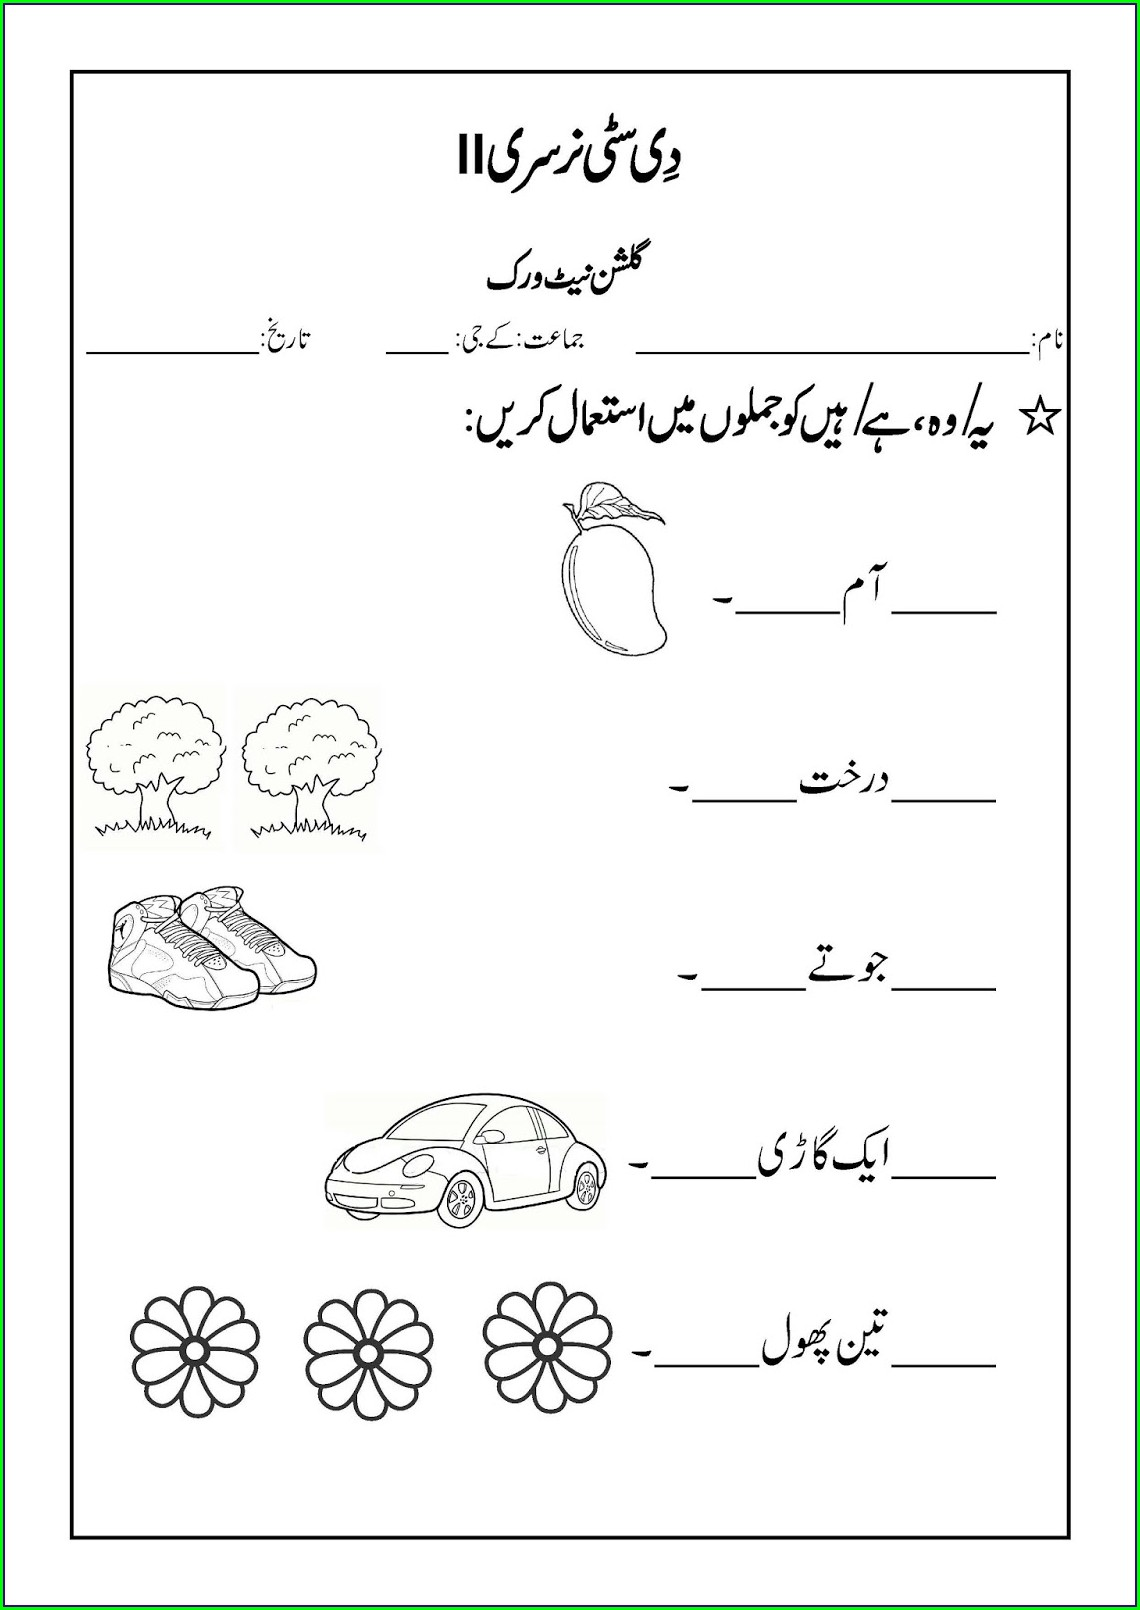 Worksheet For Kindergarten Urdu